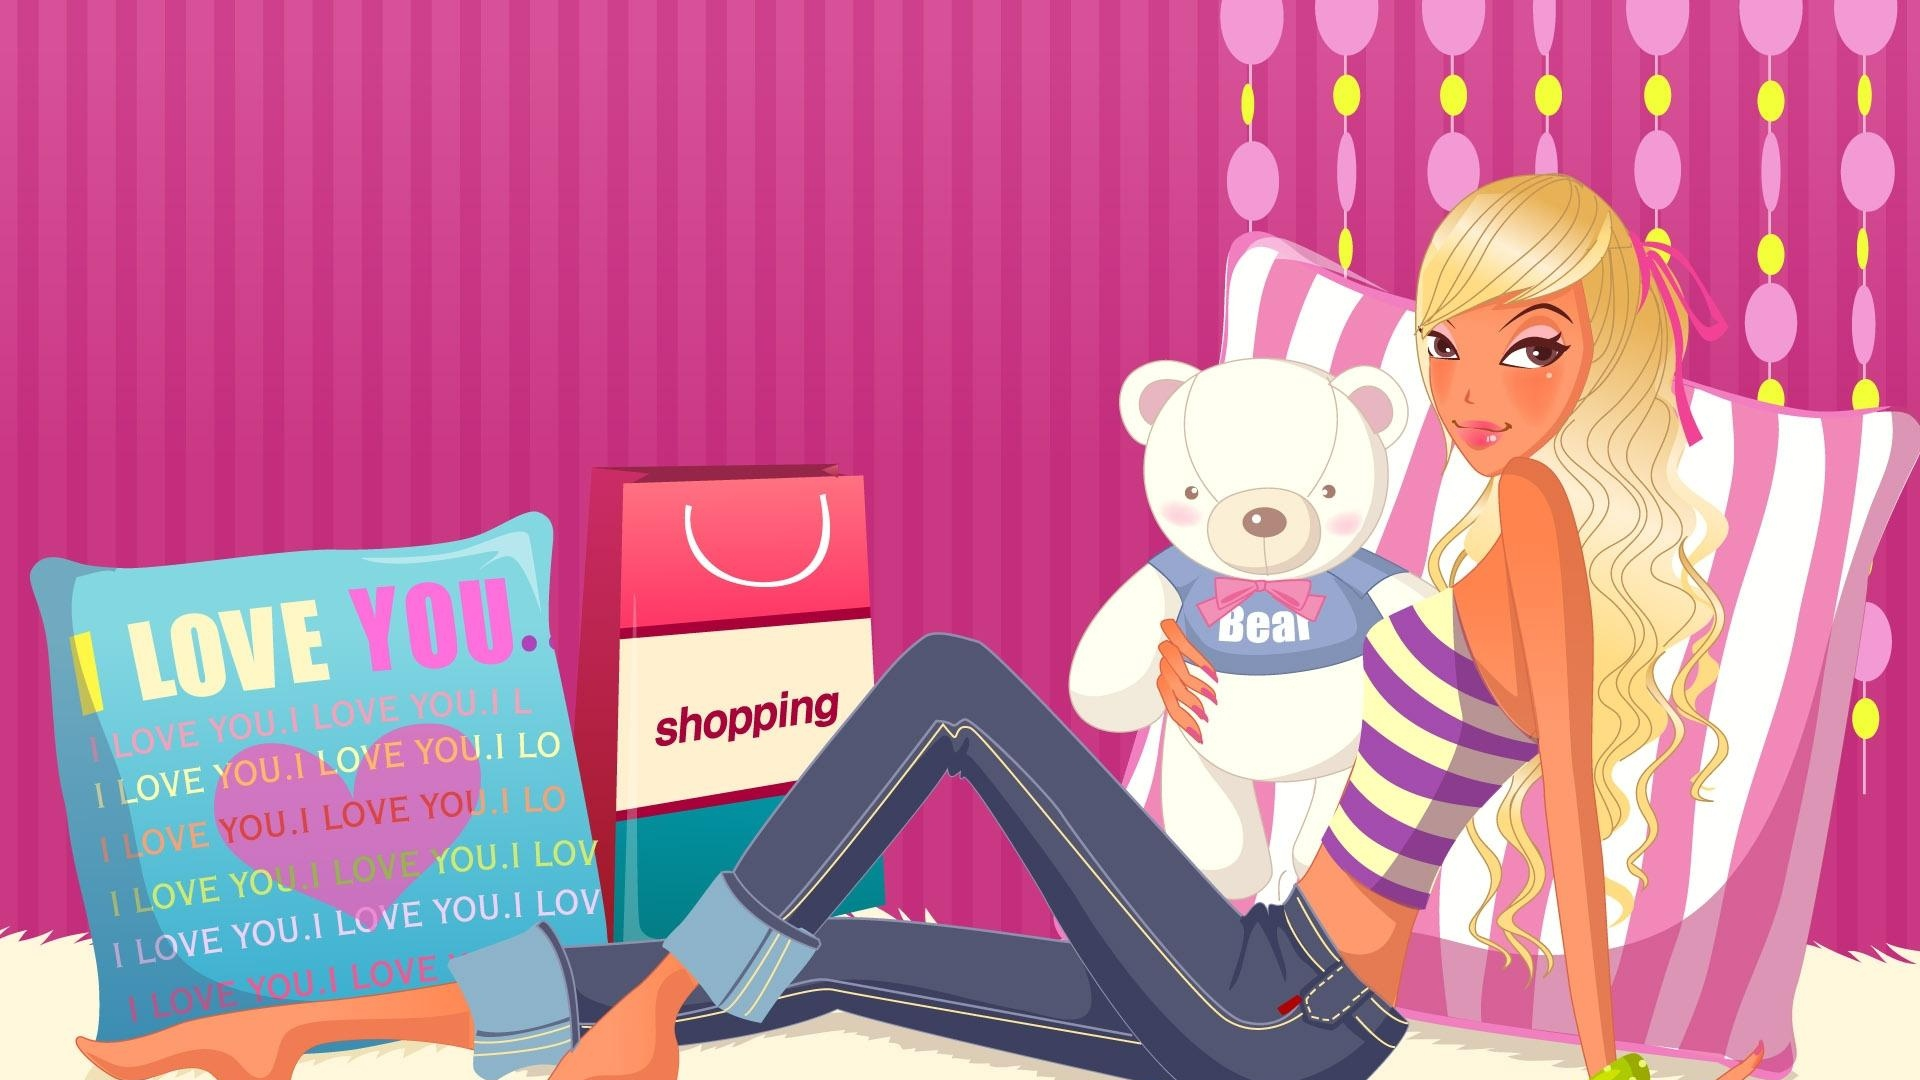 Gril Toy For Teenager : Download wallpaper girl teenager toy room